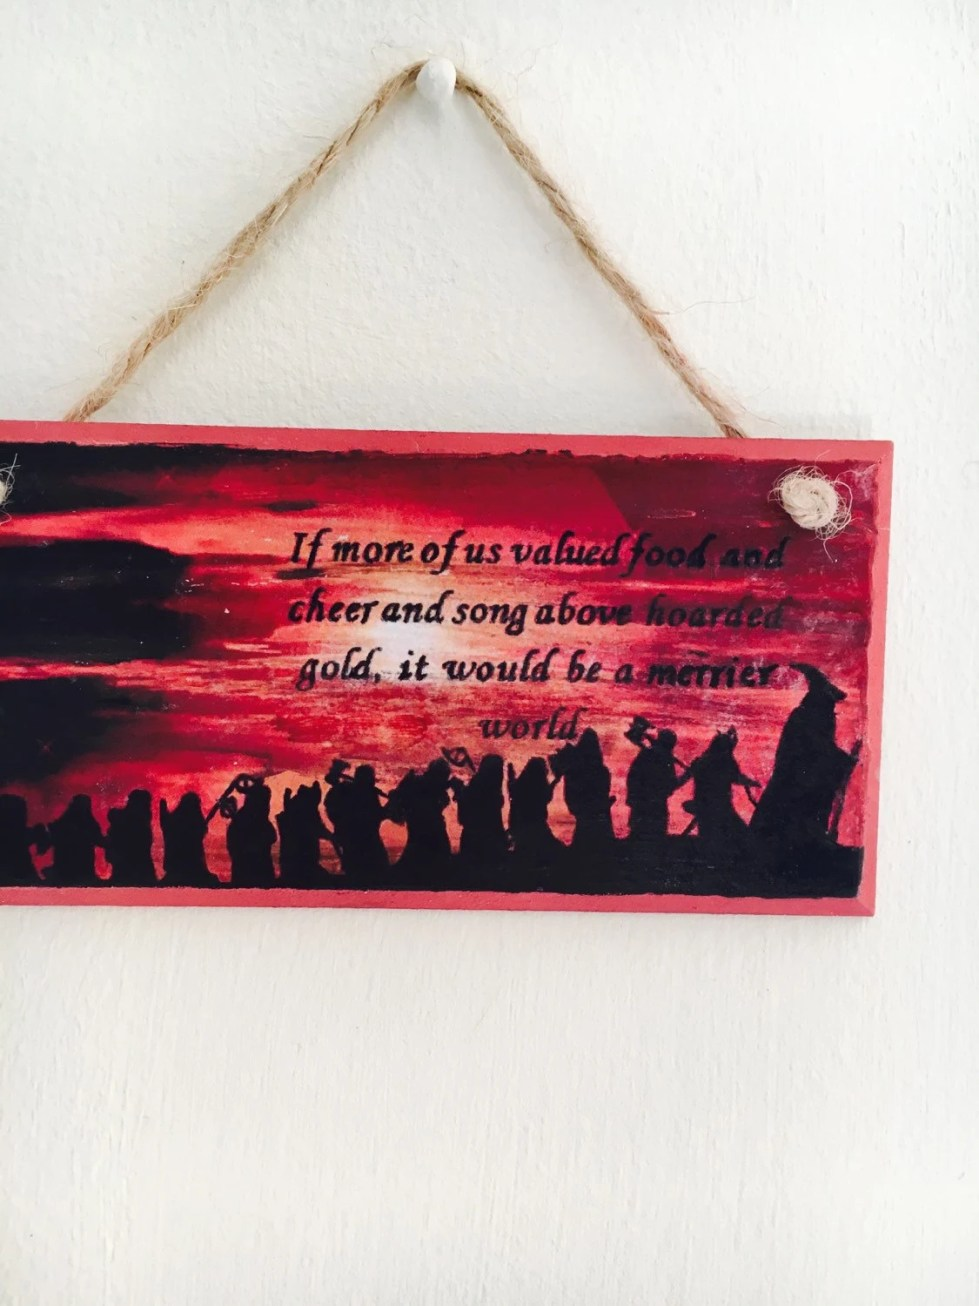 The Hobbit inspired quote...